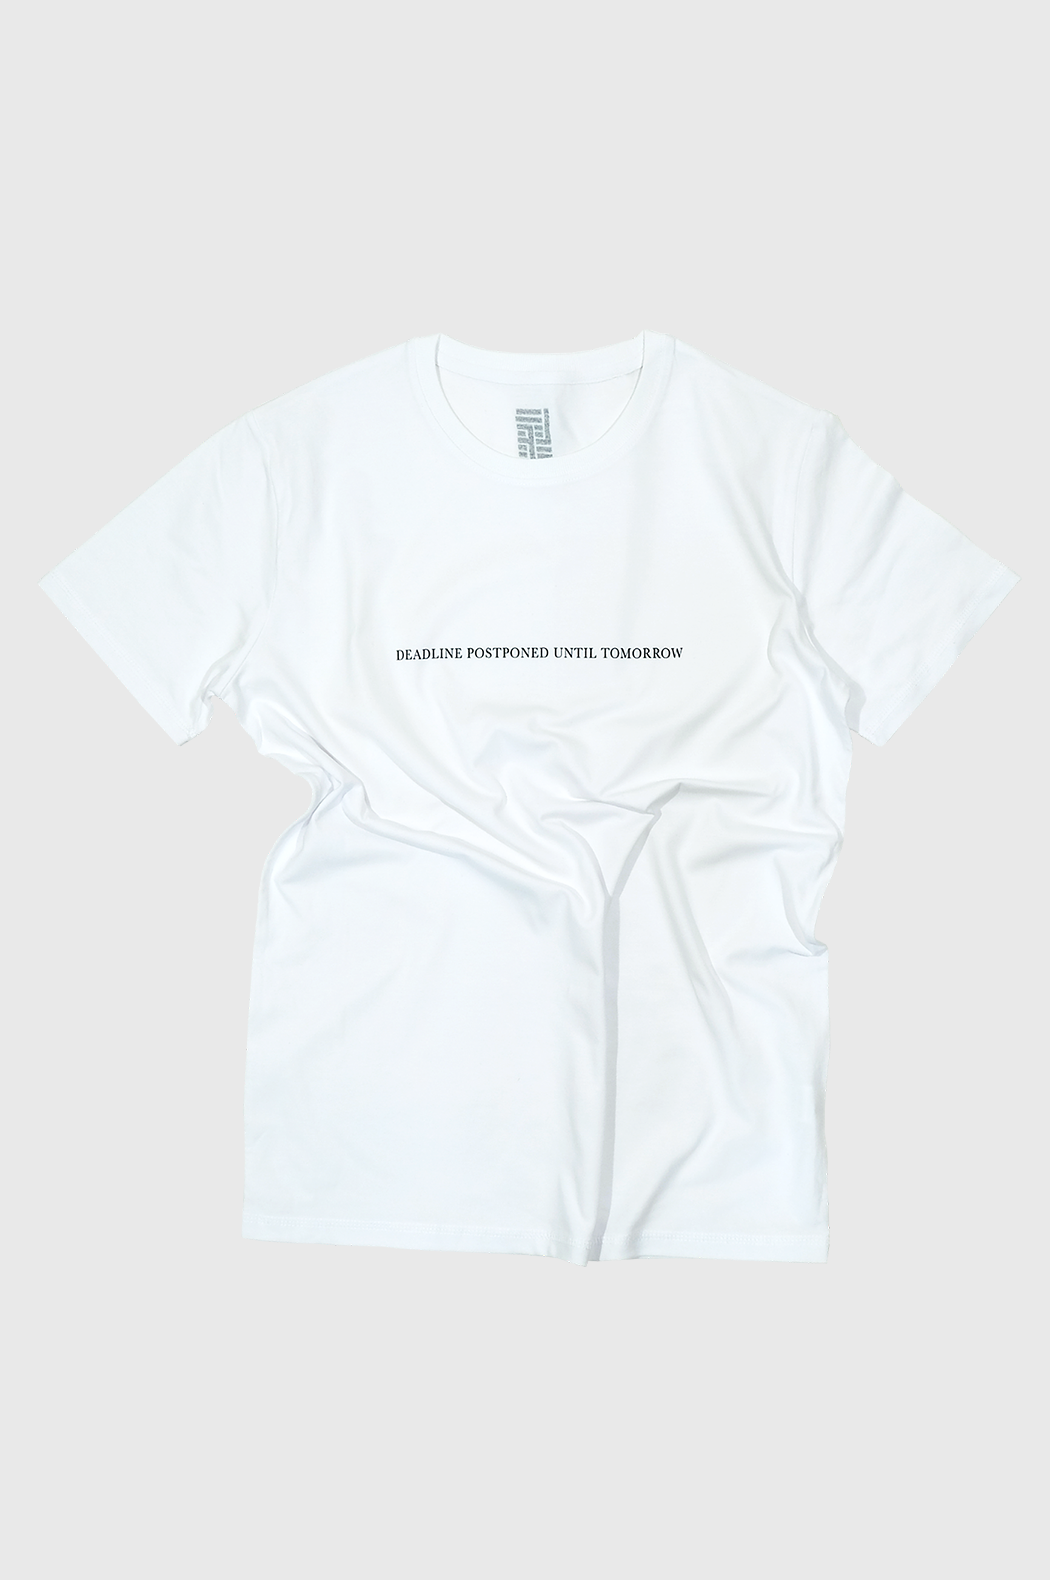 LF Deadline Tshirt in White